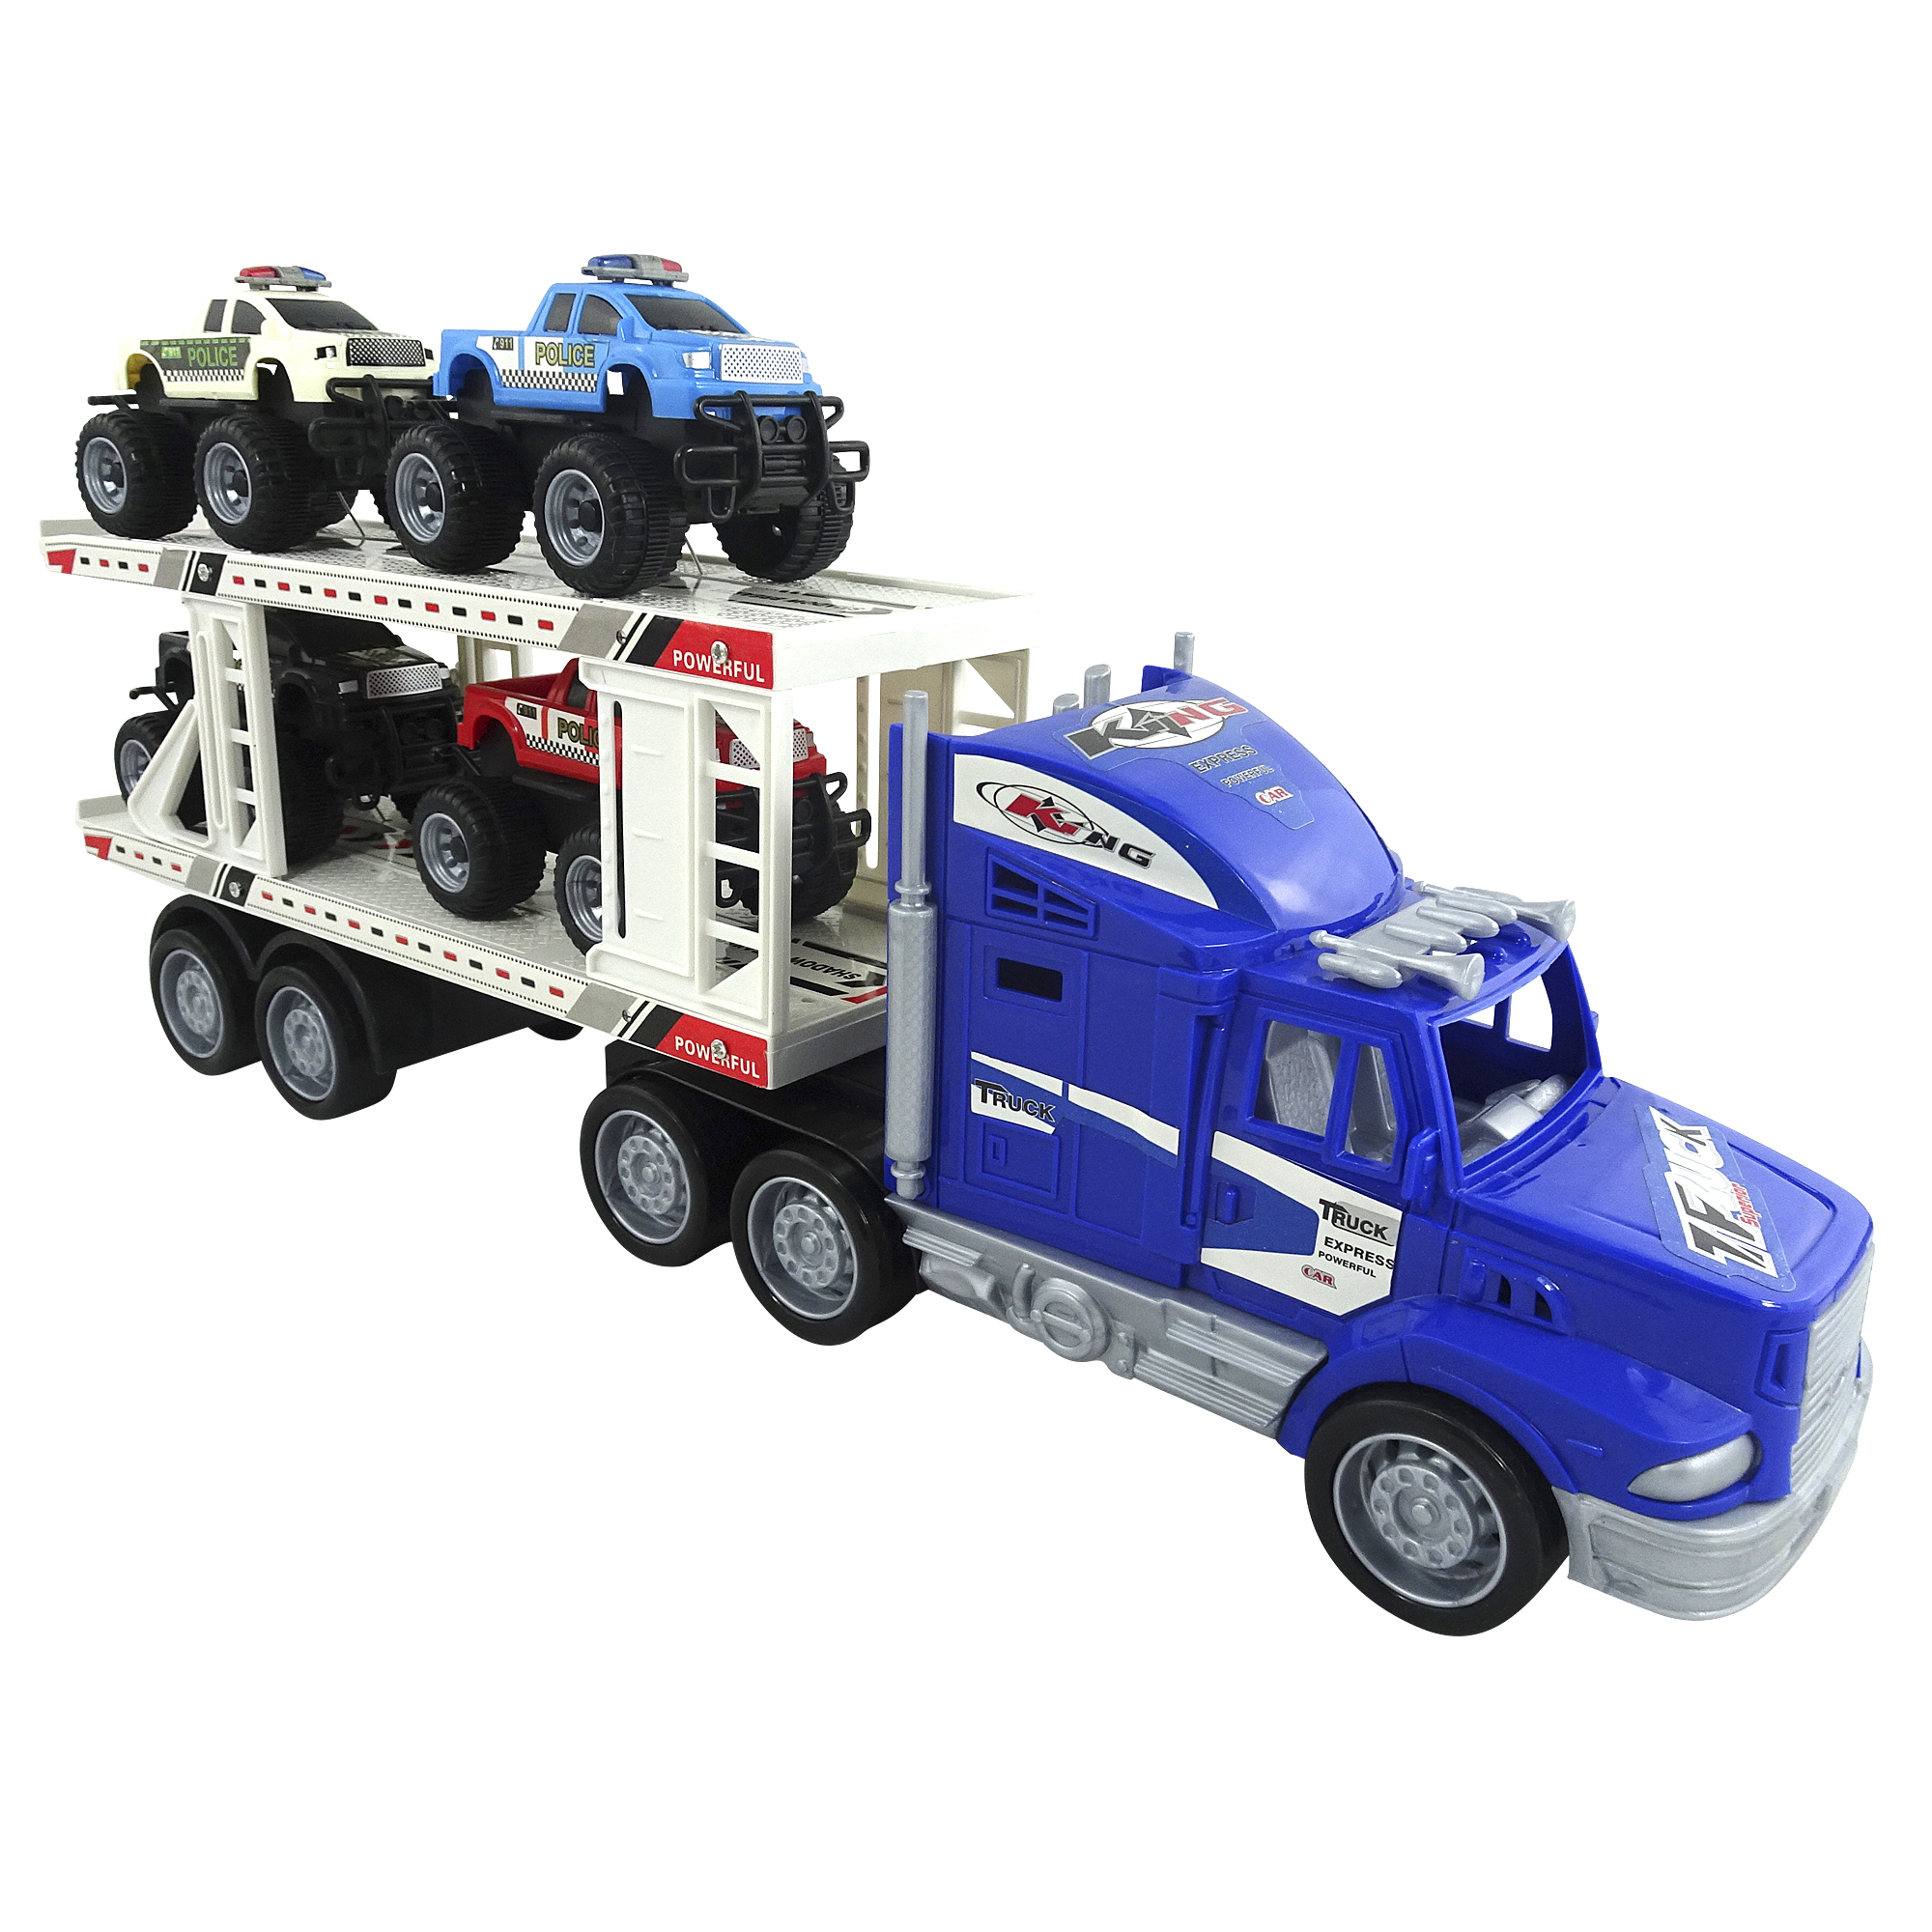 Toy Truck With Trailer Towing 4 Mini Monster Trucks Play Set